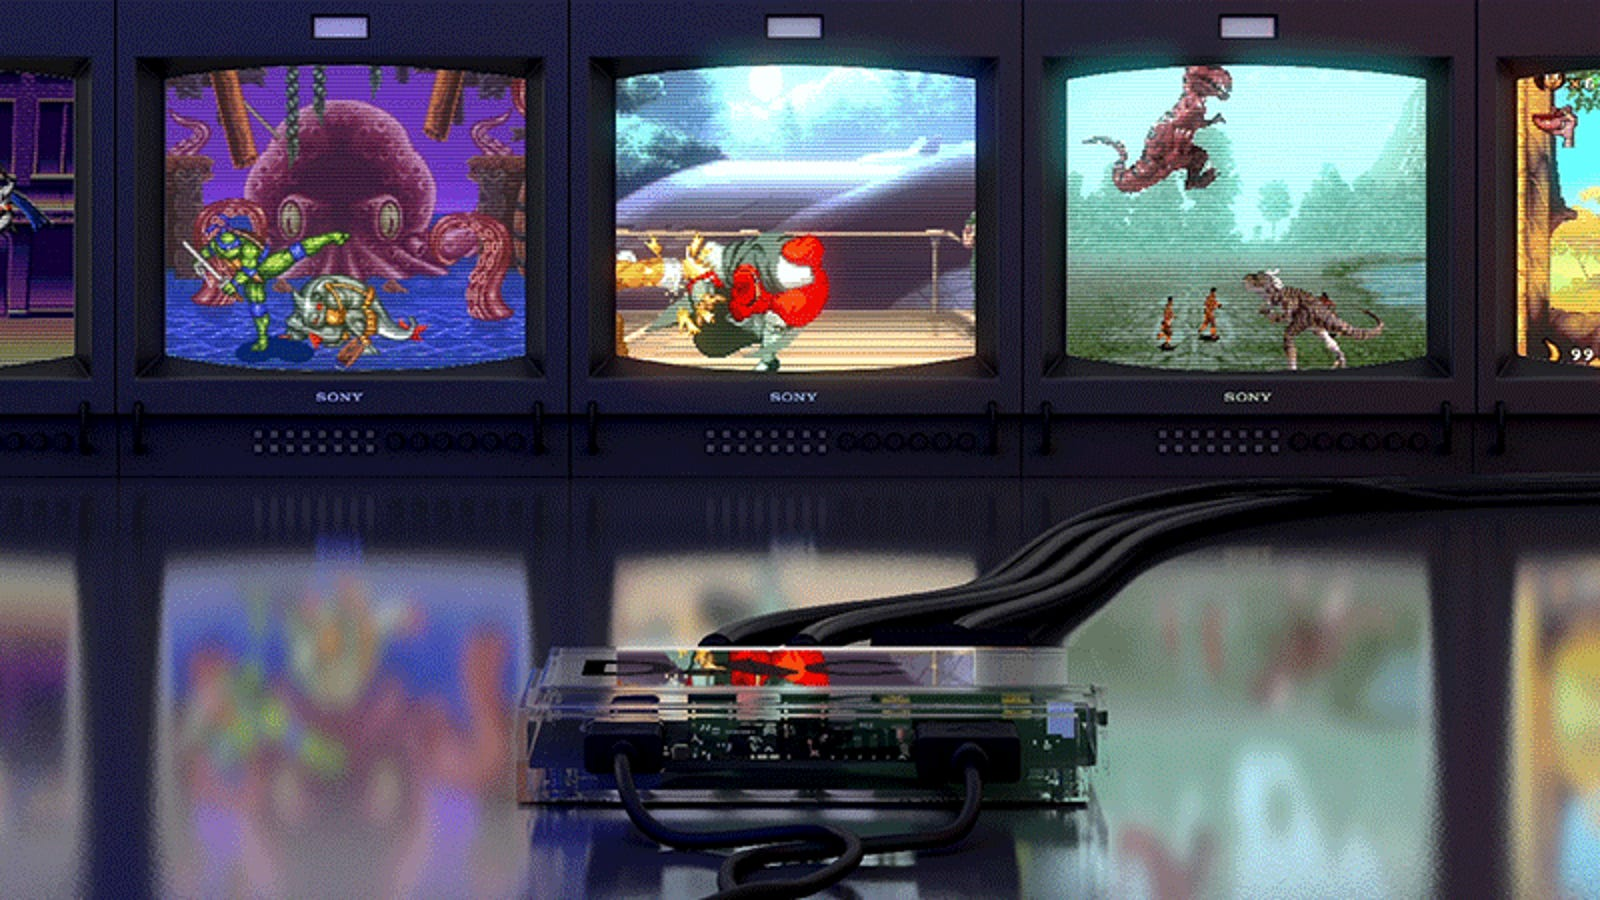 Only Die-Hard Retro Gamers Will Want This Box That Lets Modern Consoles Connect to Old-School Tube TVs